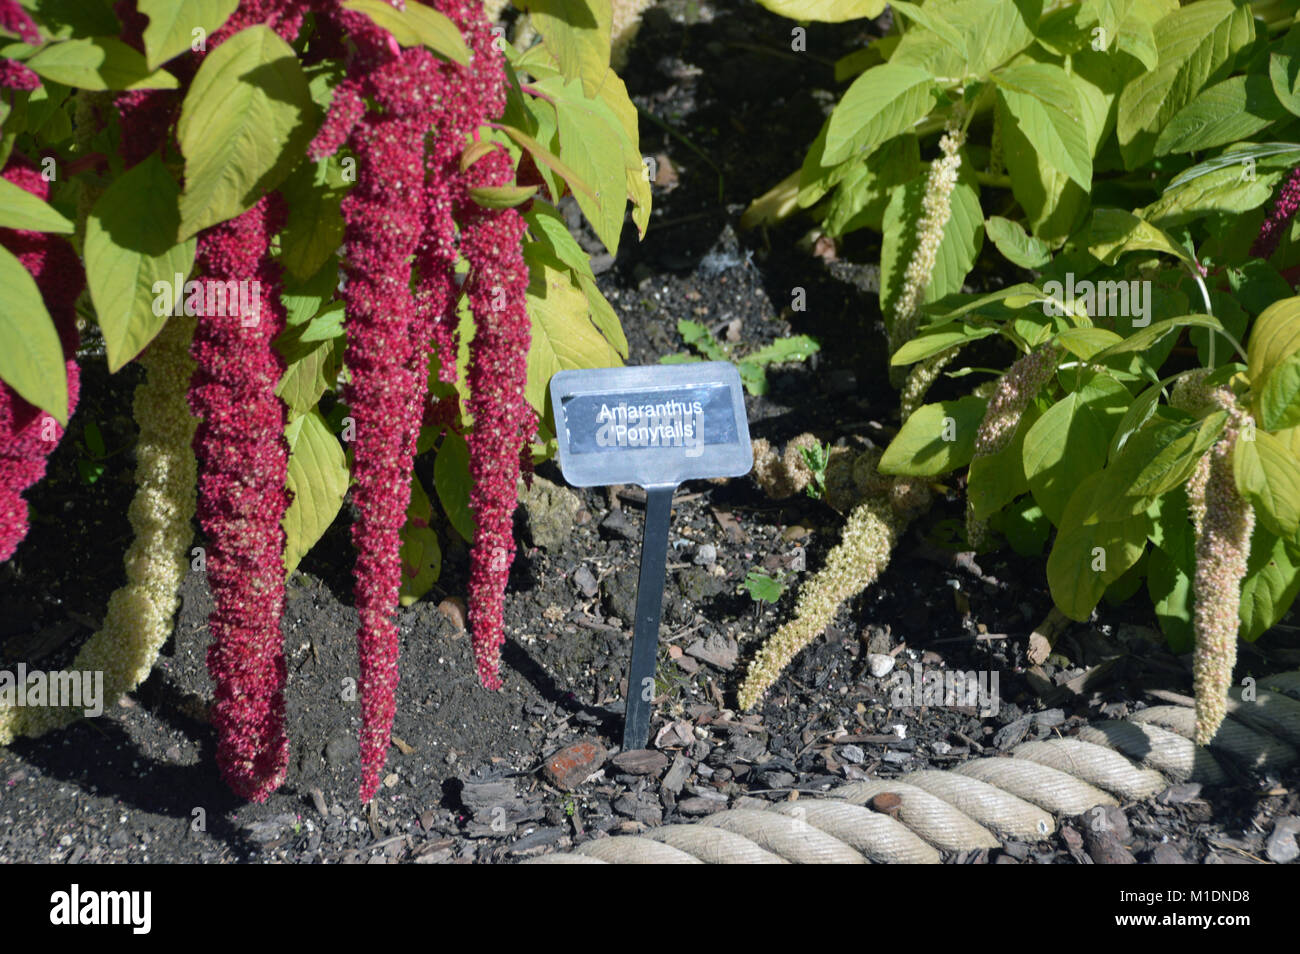 Red & Green Amaranthus caudatus 'Pony Tails' Flowers (Love-lies-bleeding) on Display in a Border at - Stock Image